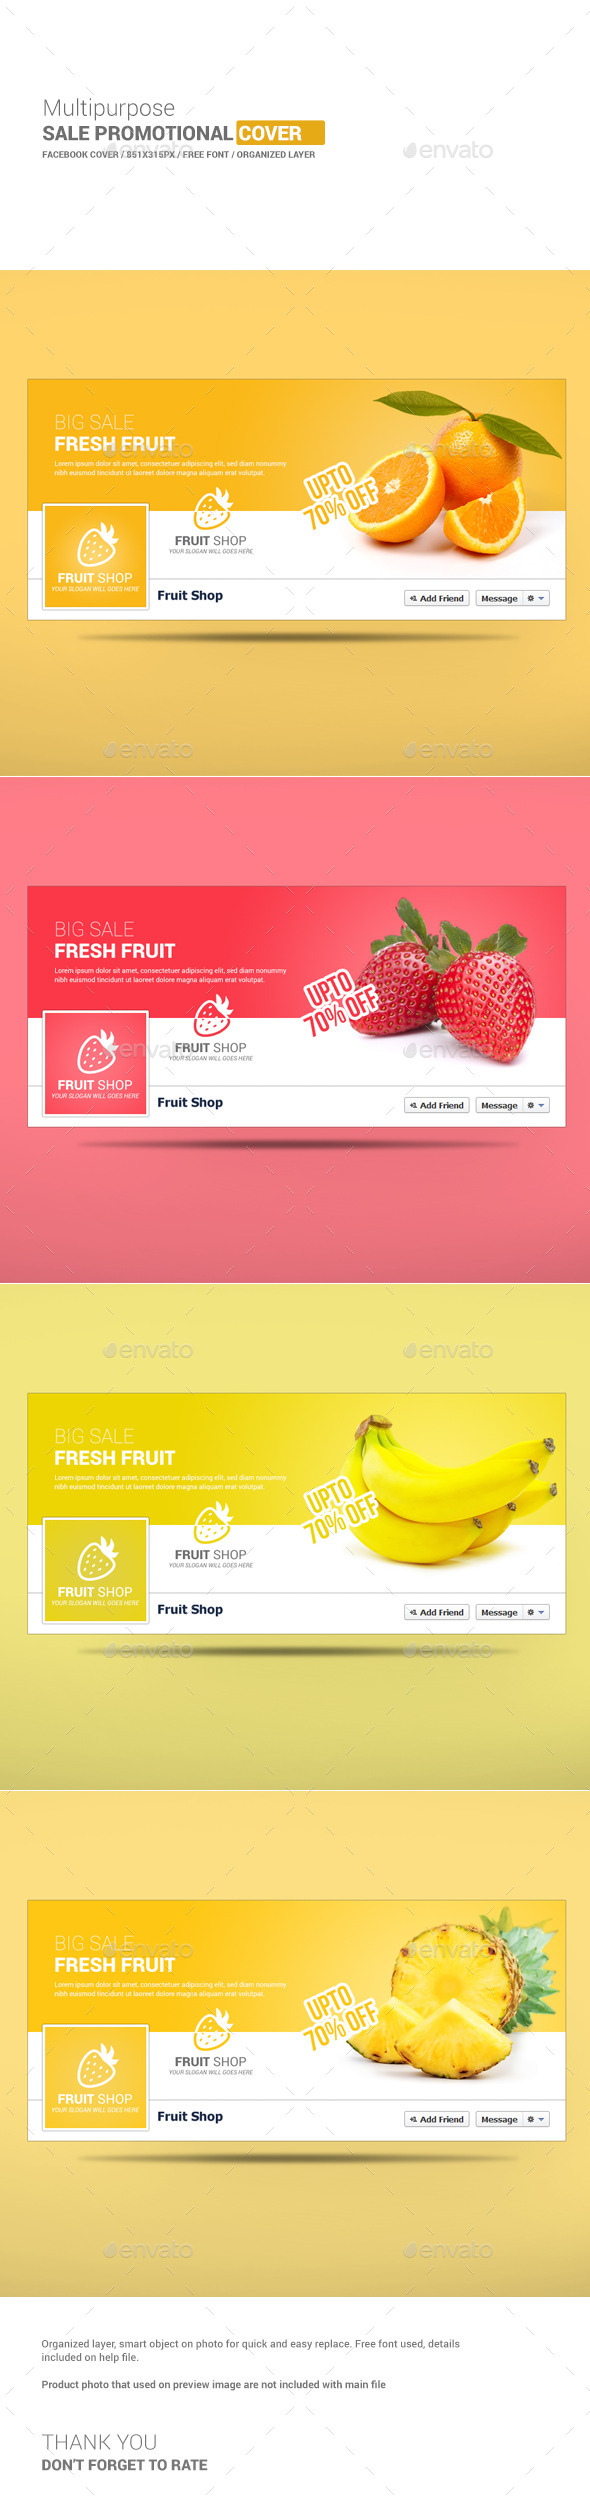 GraphicRiver Multipurpose Sale Facebook Cover 10267237